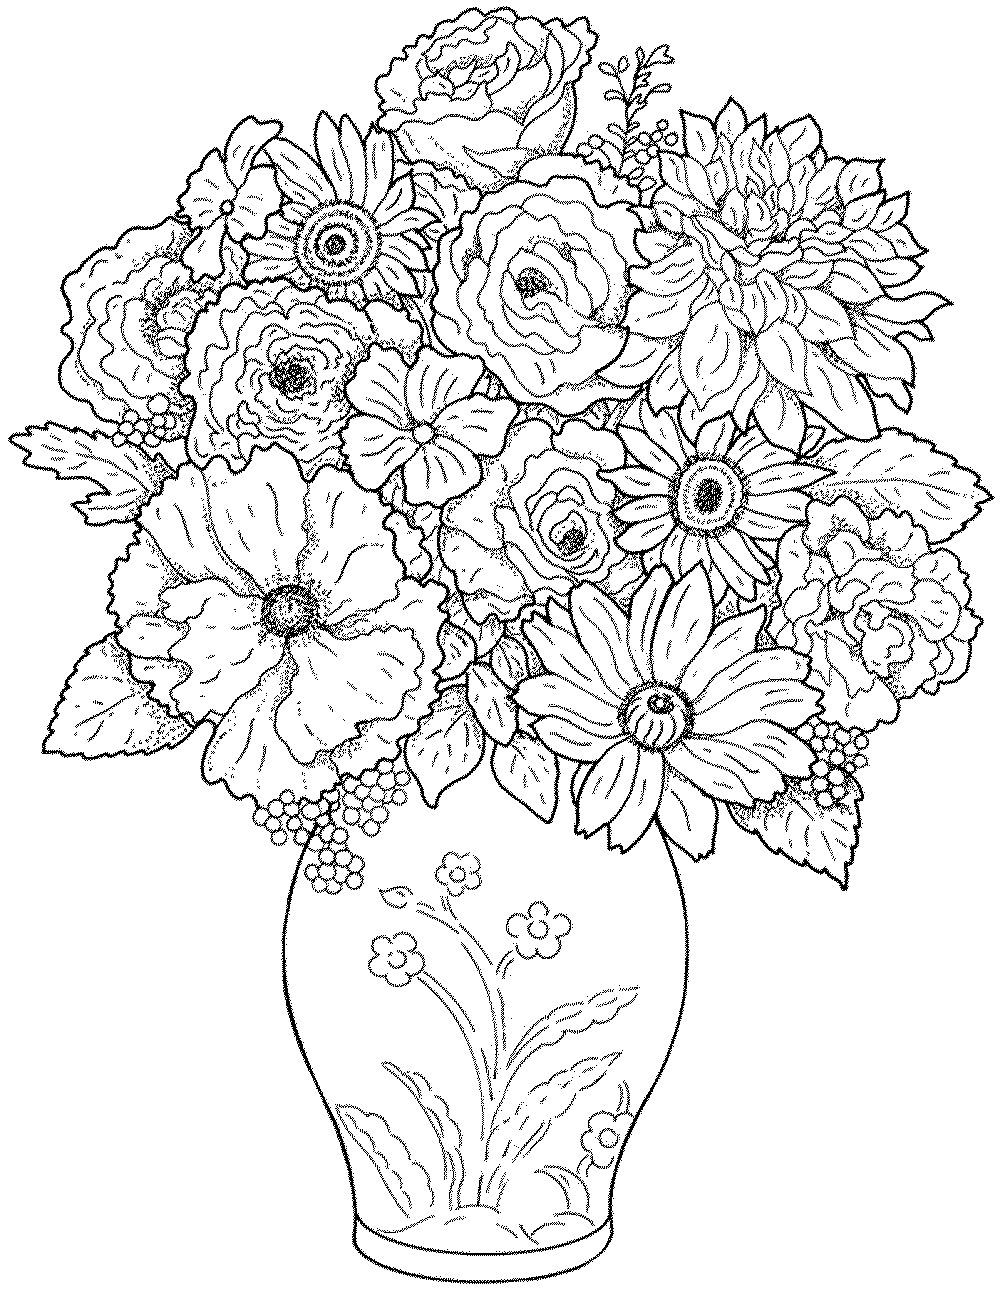 coloring-pages-to-print-for-adults | | BestAppsForKids.com